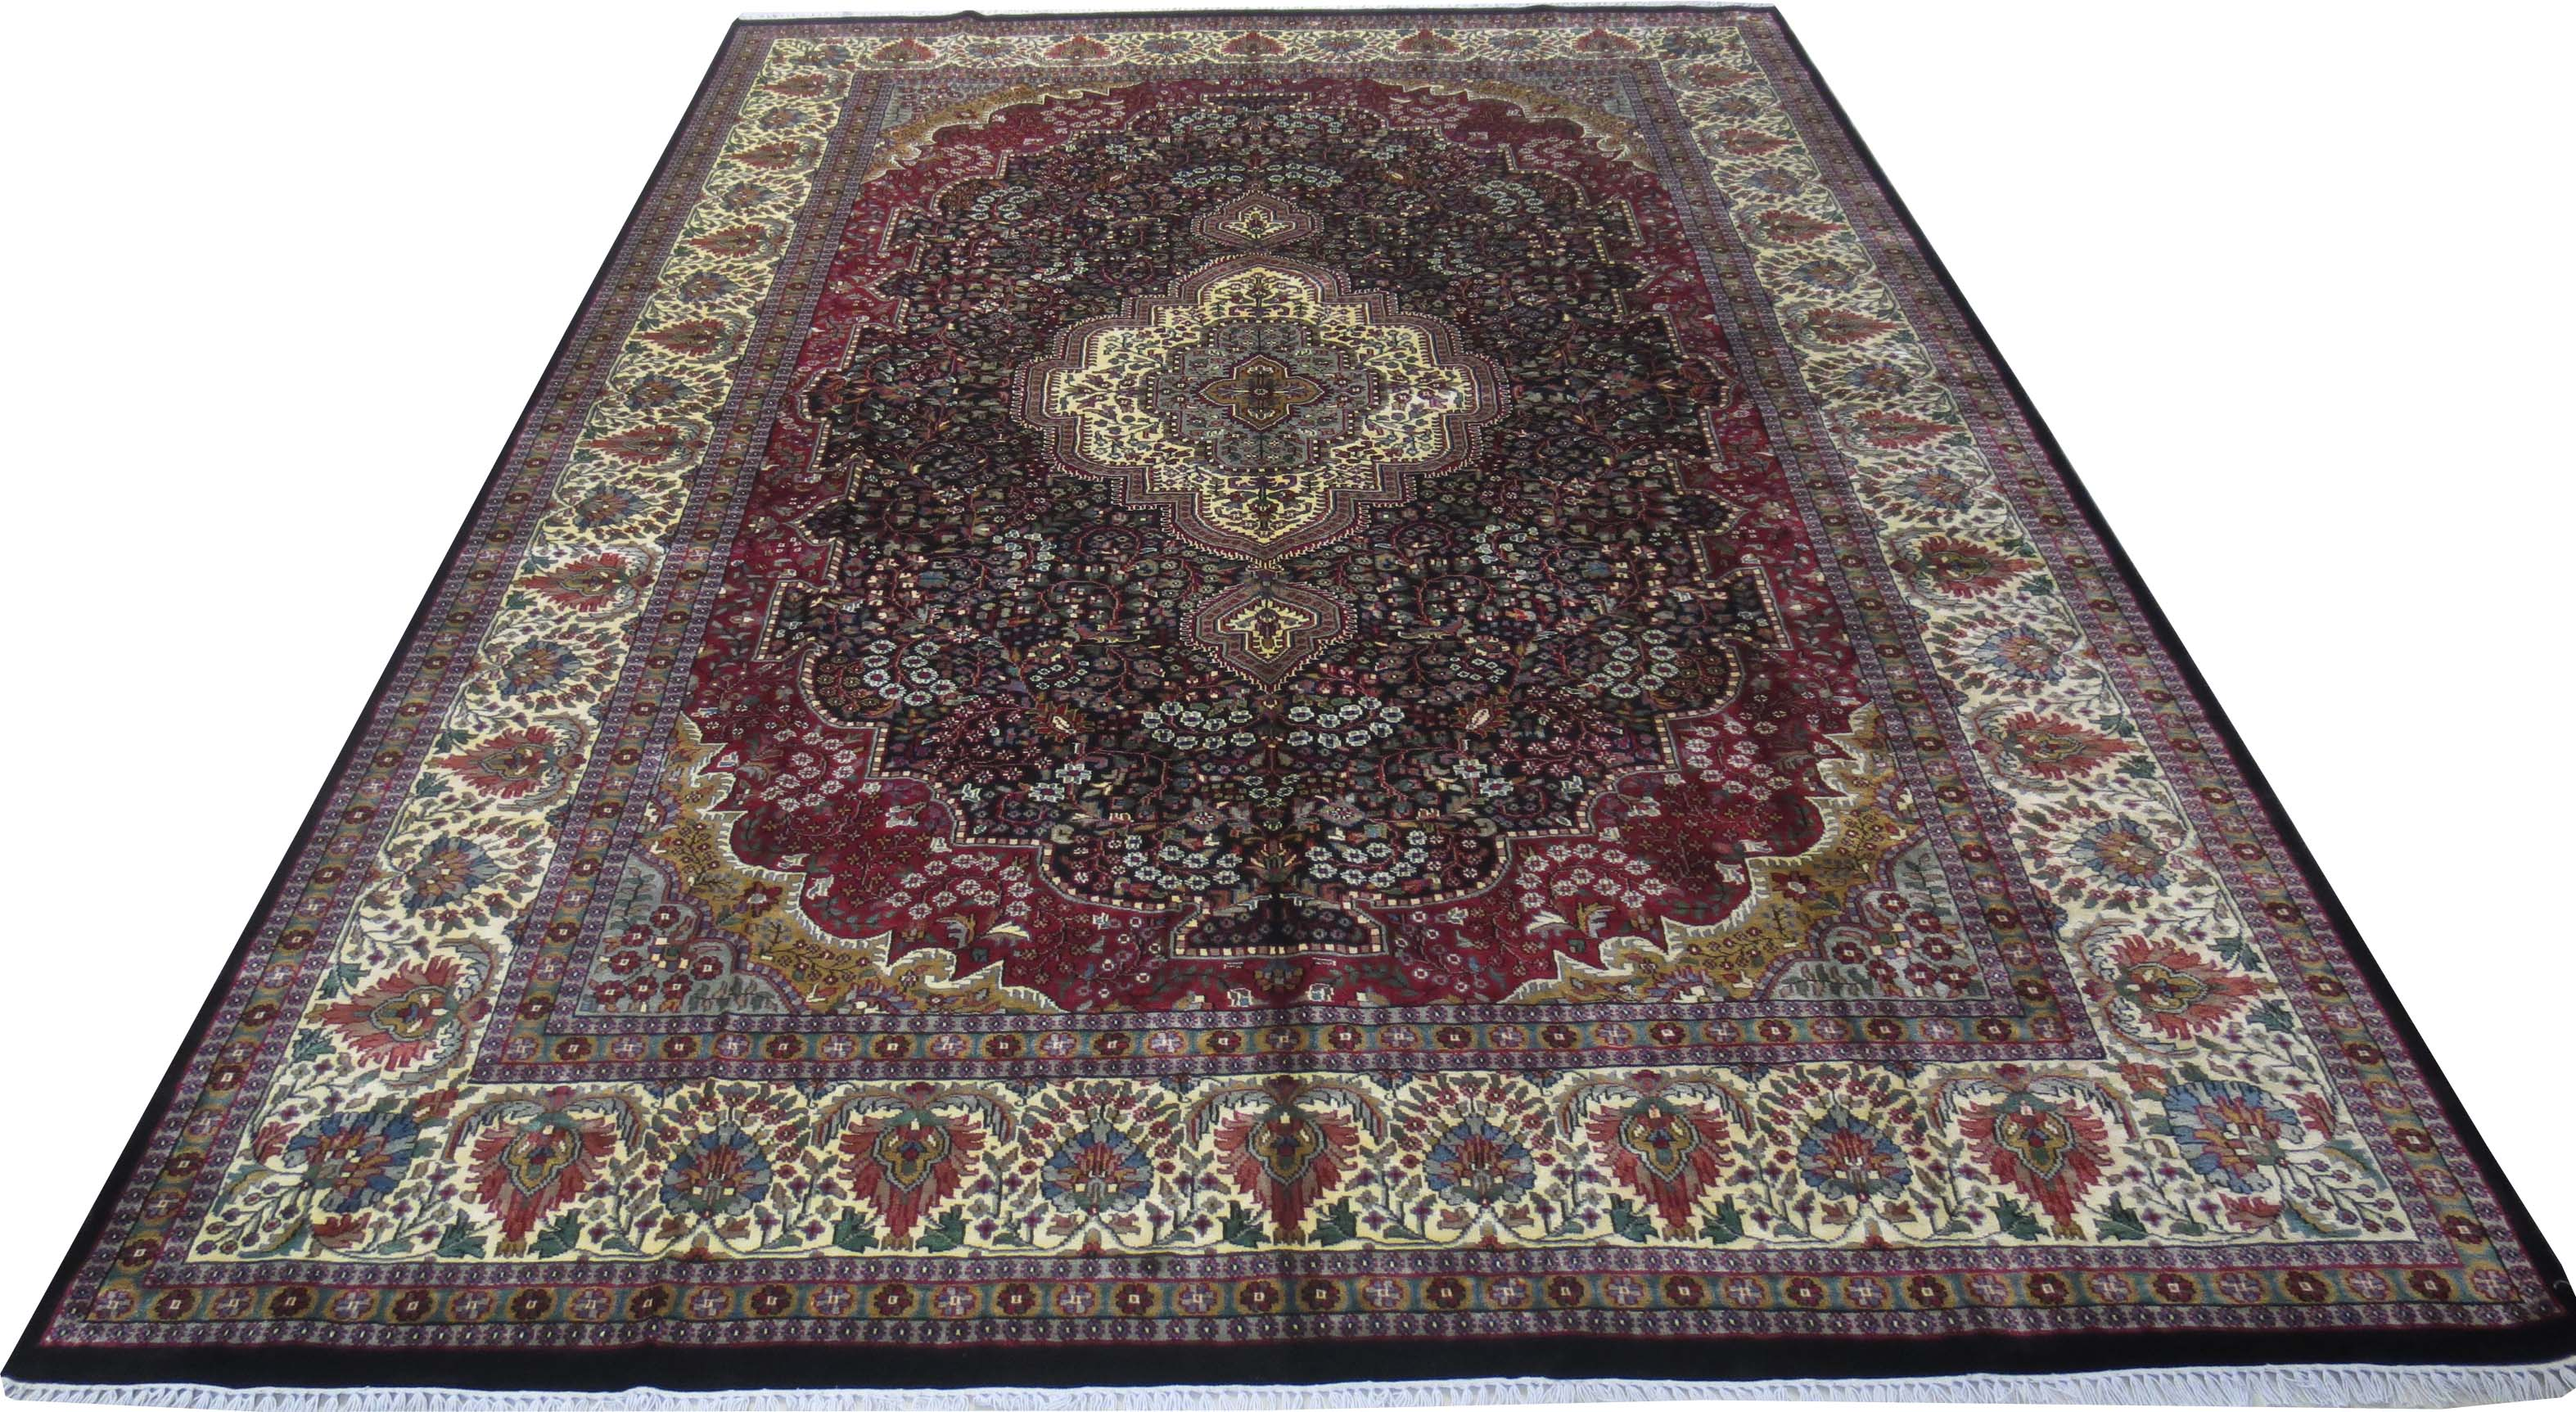 Rugs On Hardwood Floors Handmade 9 X 12 Silk Blend Kashmir